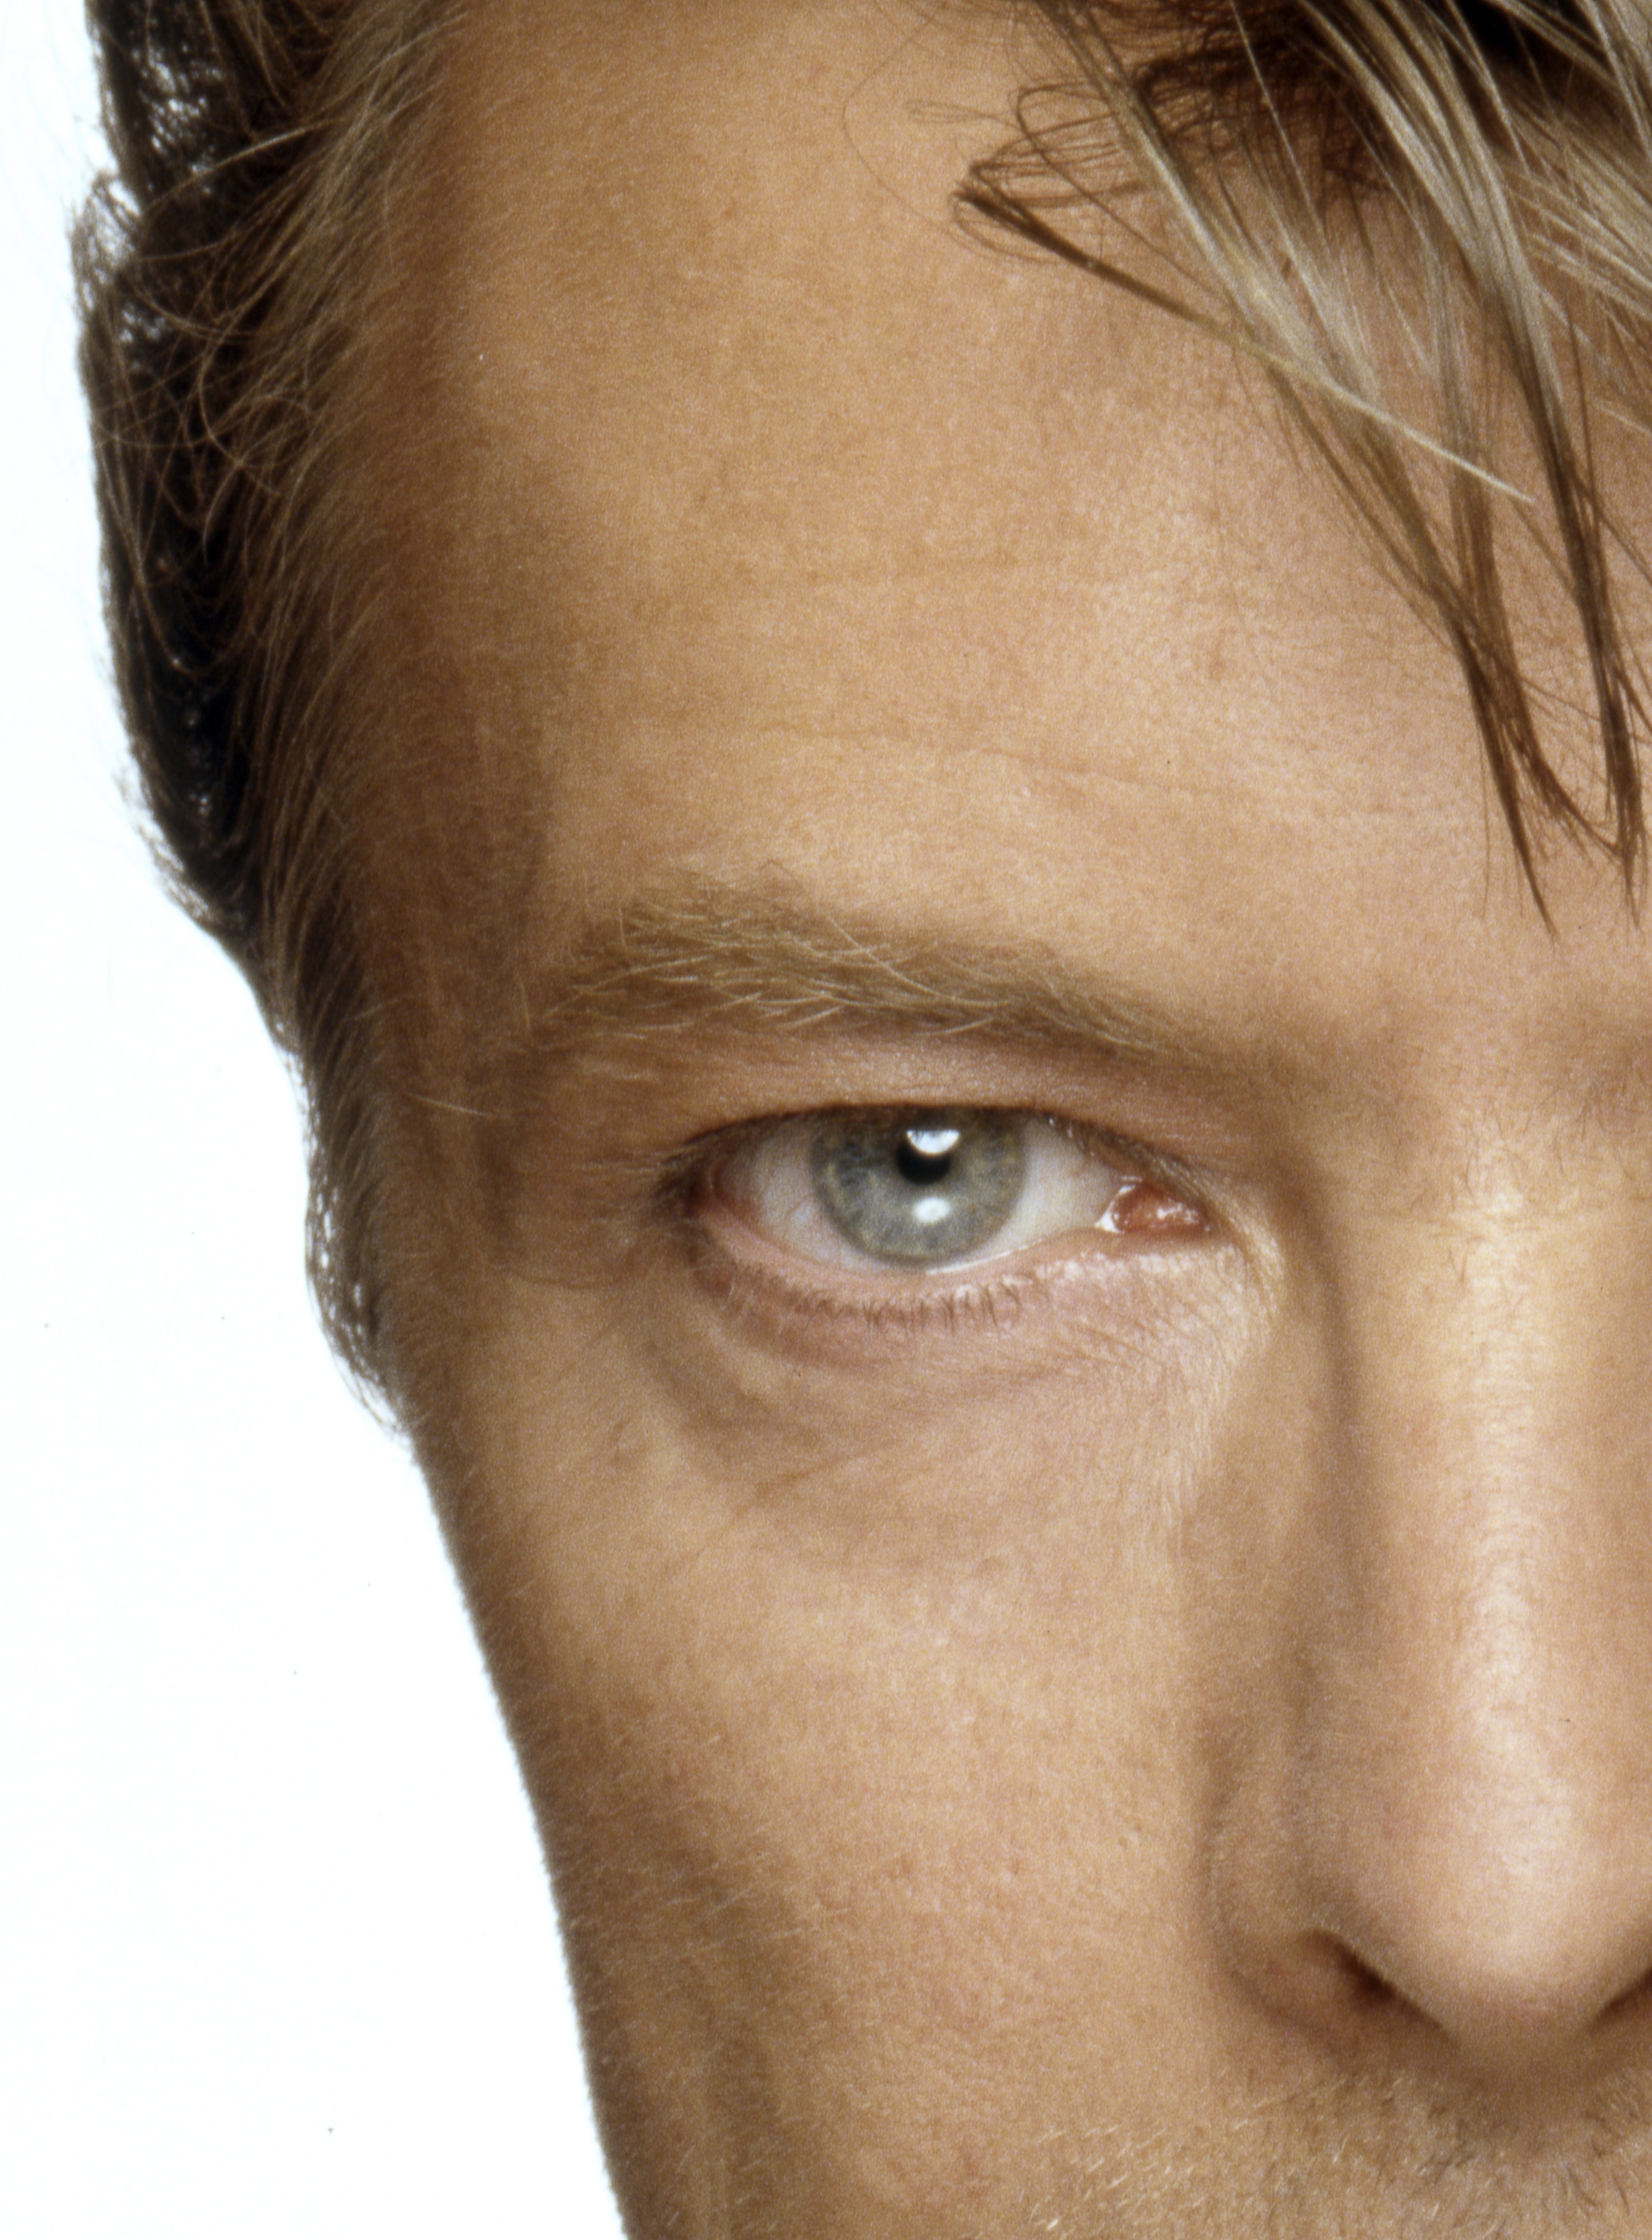 David Bowie Eyes Left Half By Terry Oneill